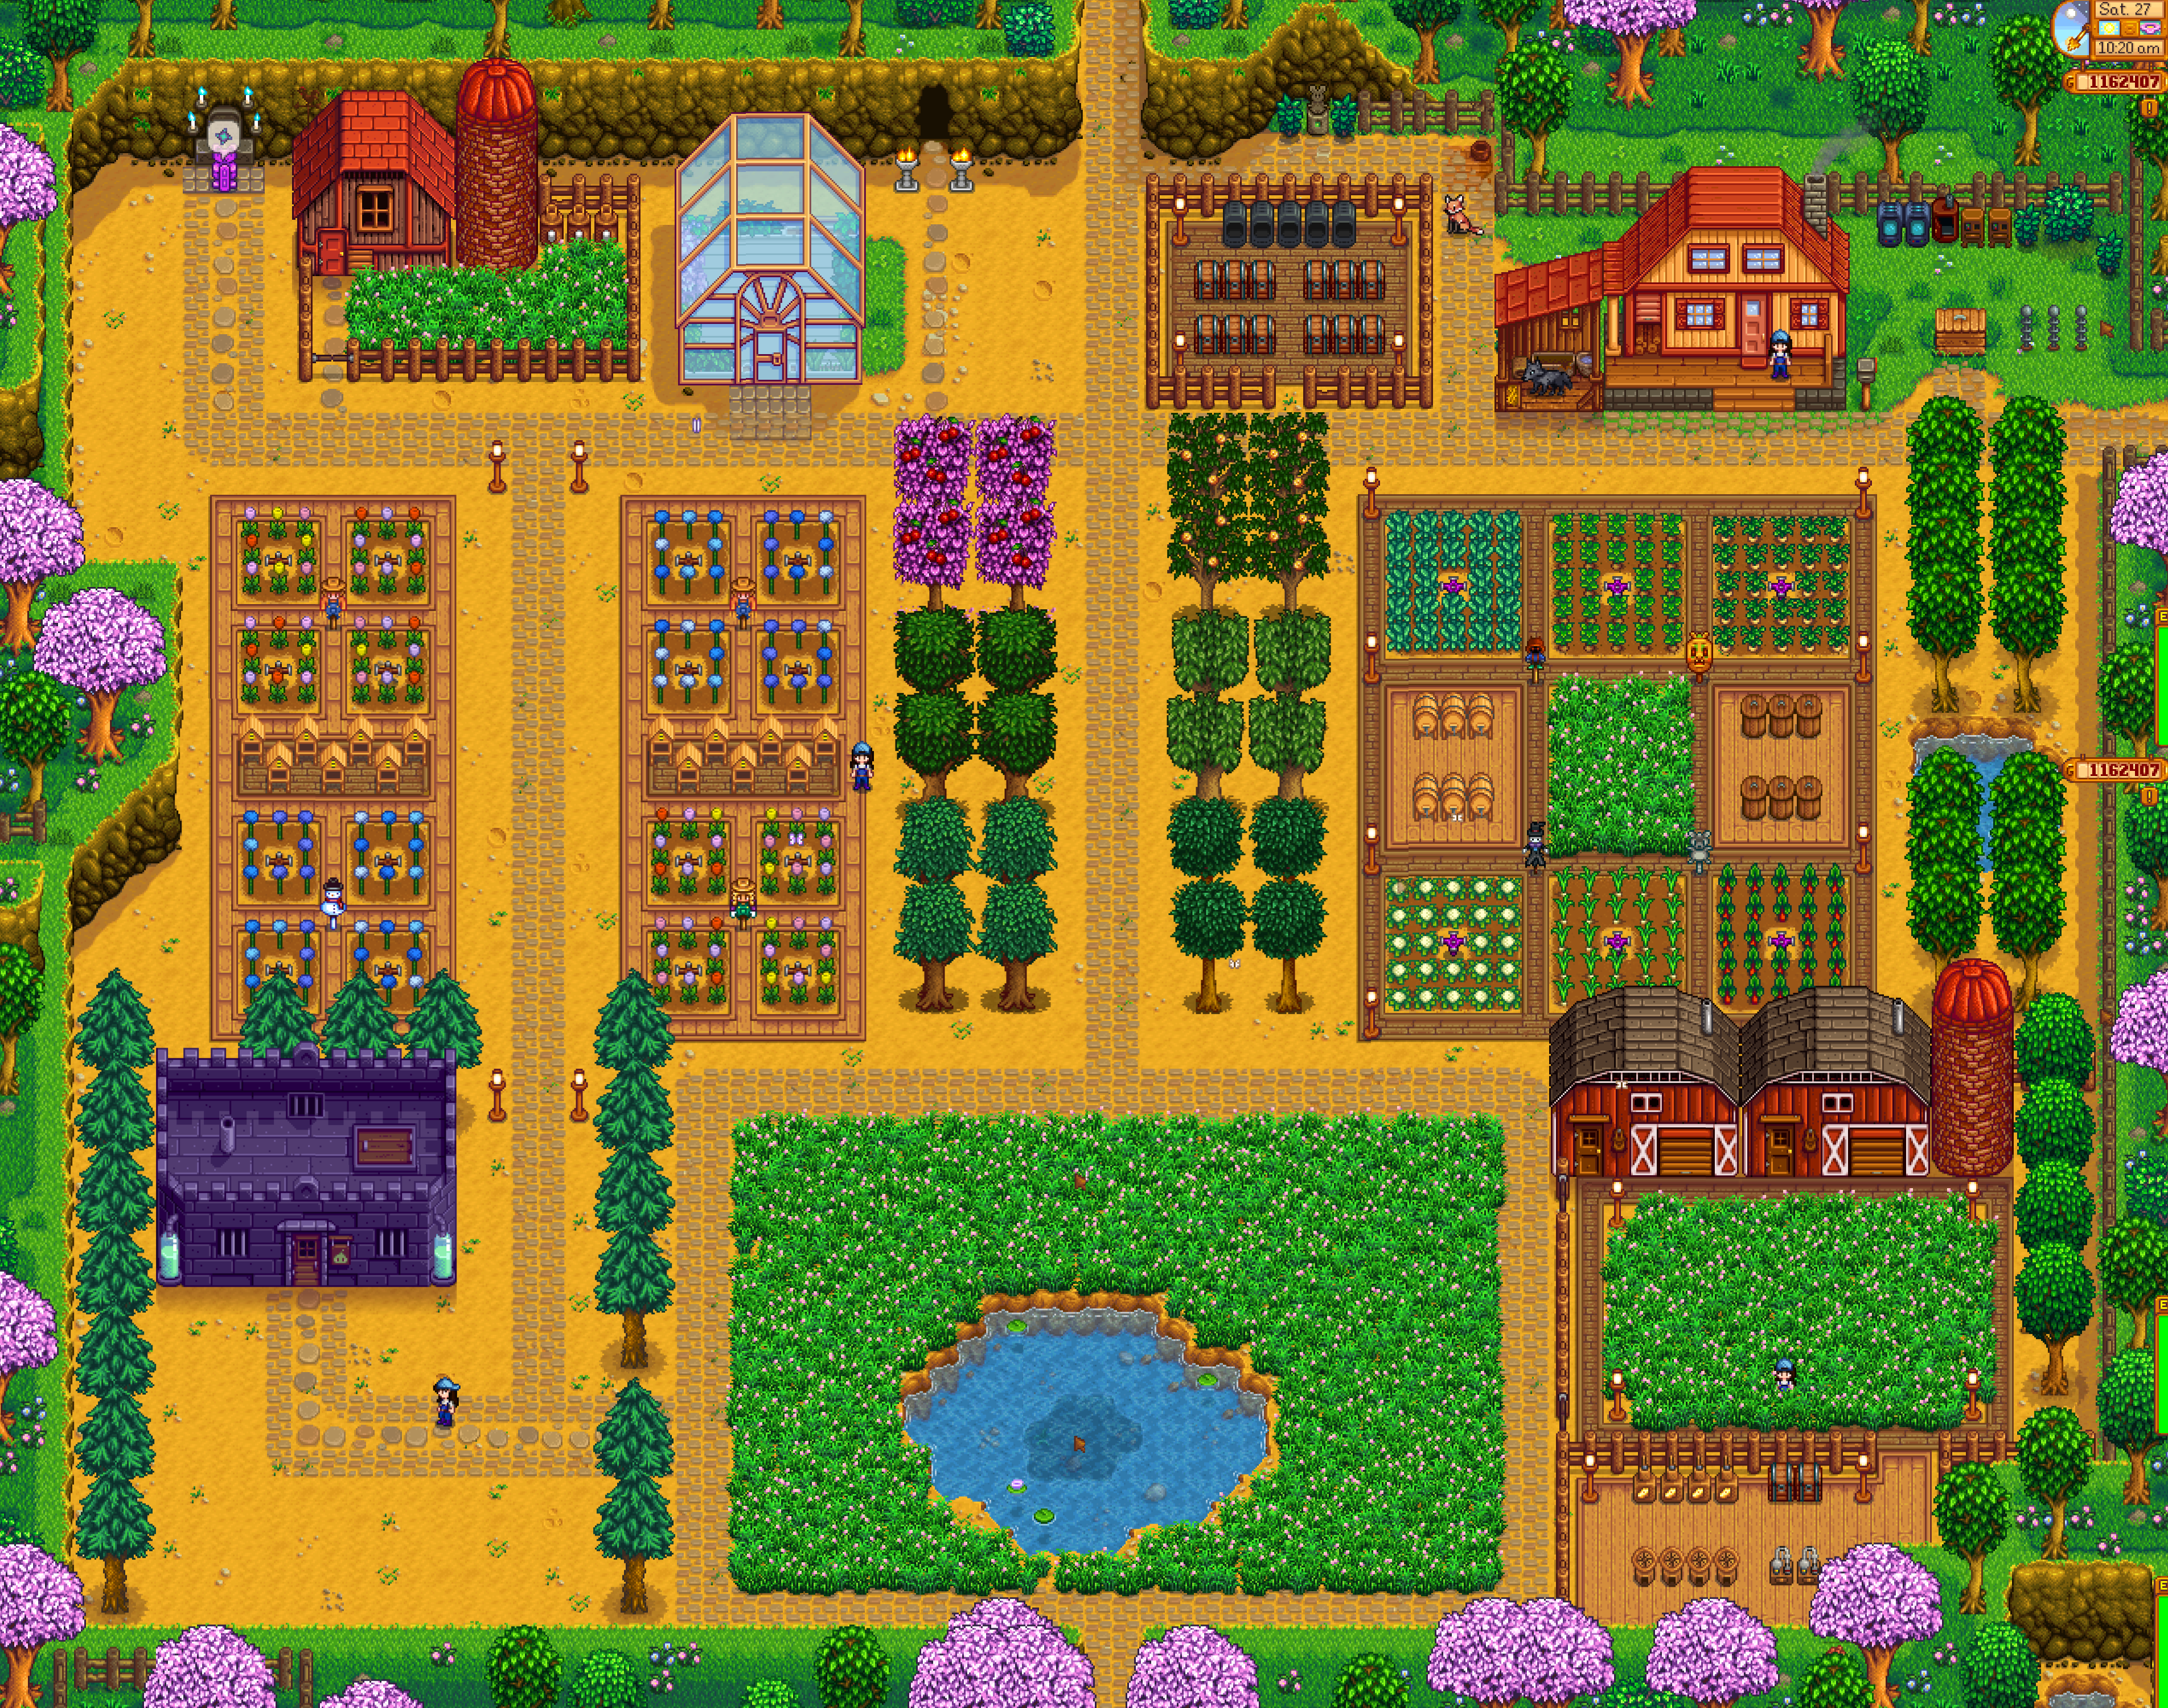 Stardew Valley Farming Guide Setup Layouts And Design Stardew Valley Stardew Valley Stardew Valley Farms Stardew Valley Layout